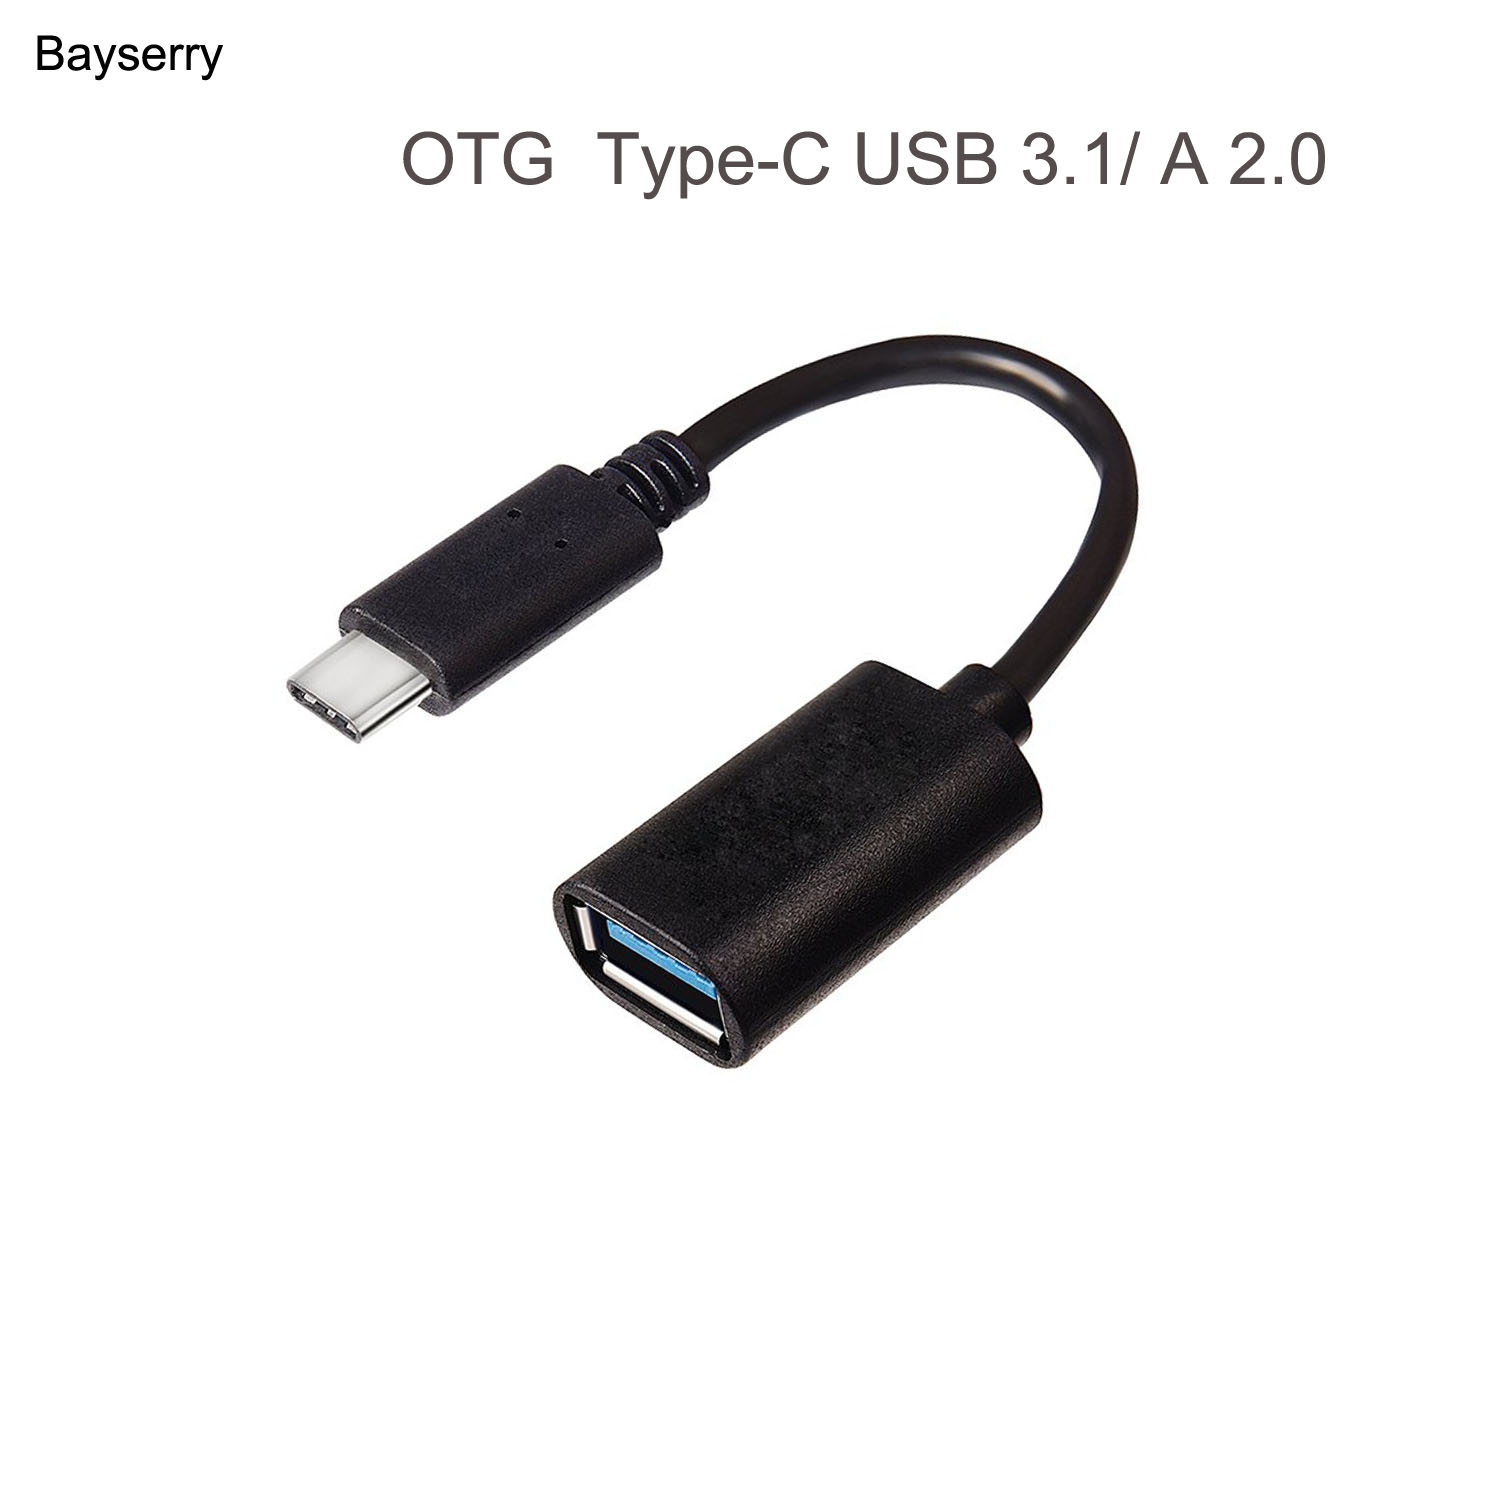 USB C To USB Adapter OTG Adaptor Type C To USB A Converter Data Syncing And Charging For SM,MacBook,ChromeBook All Type C Device